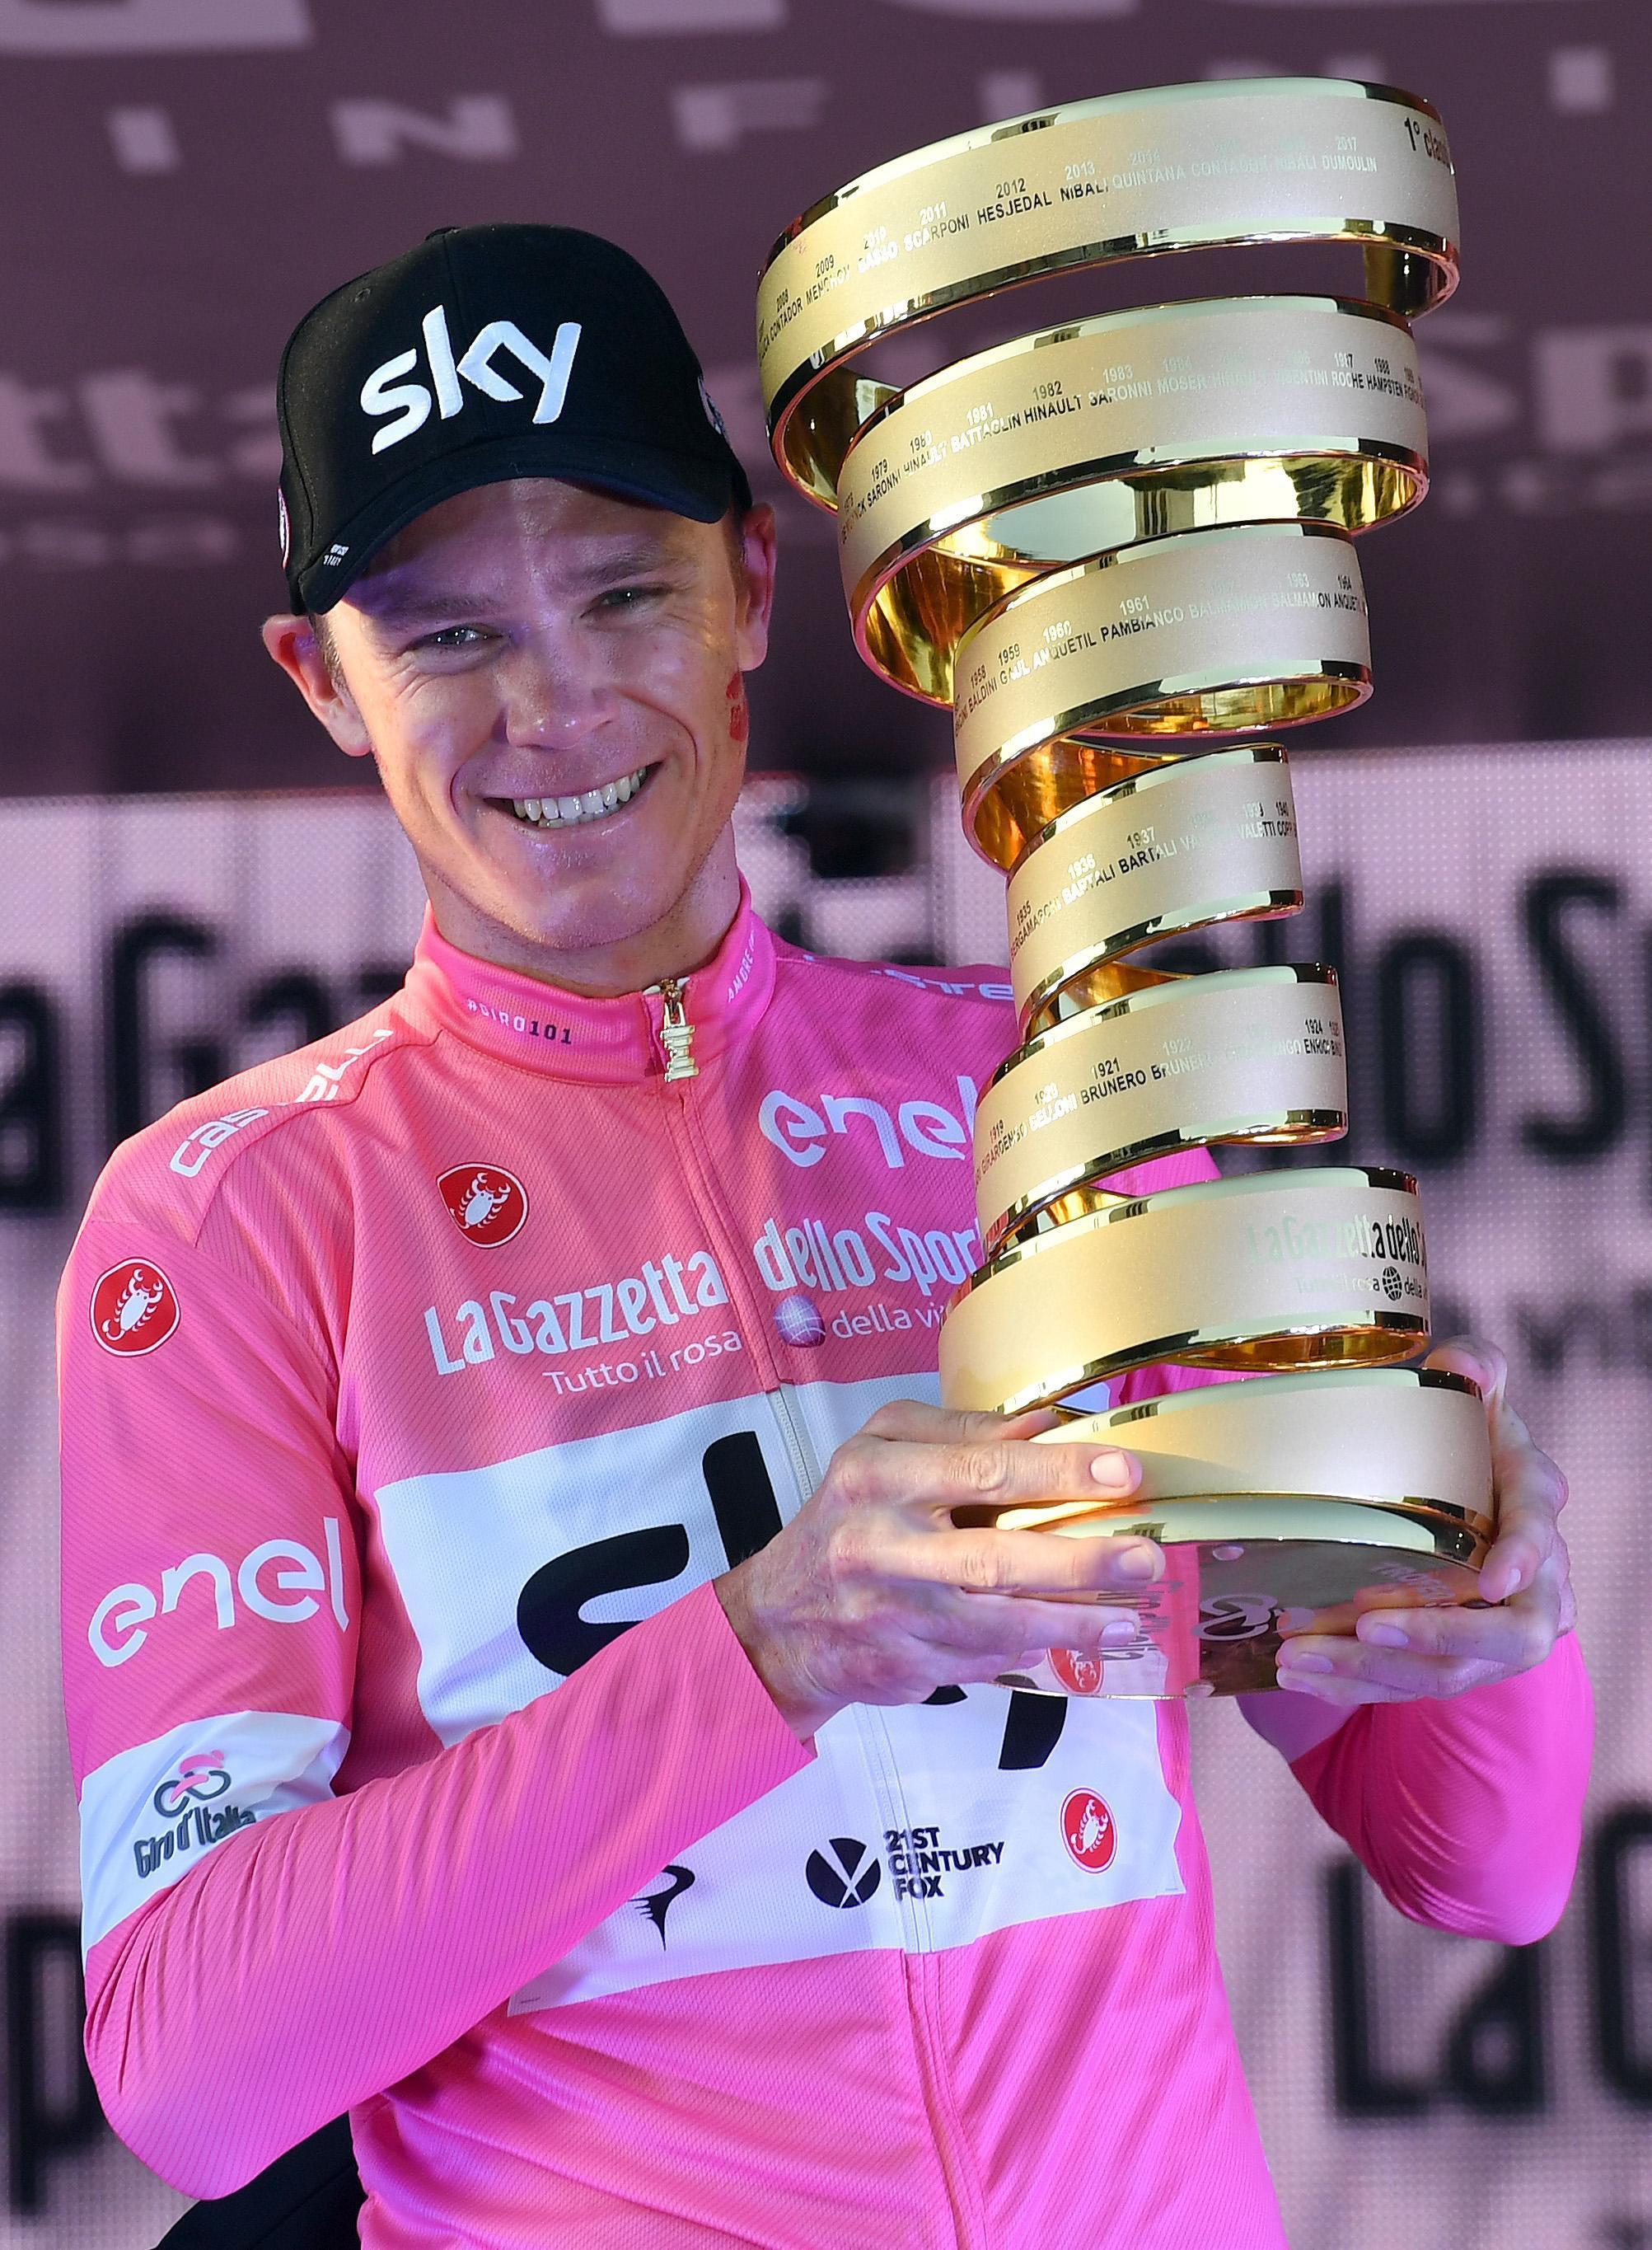 Chris Froome clinched Giro d'Italia victory in May